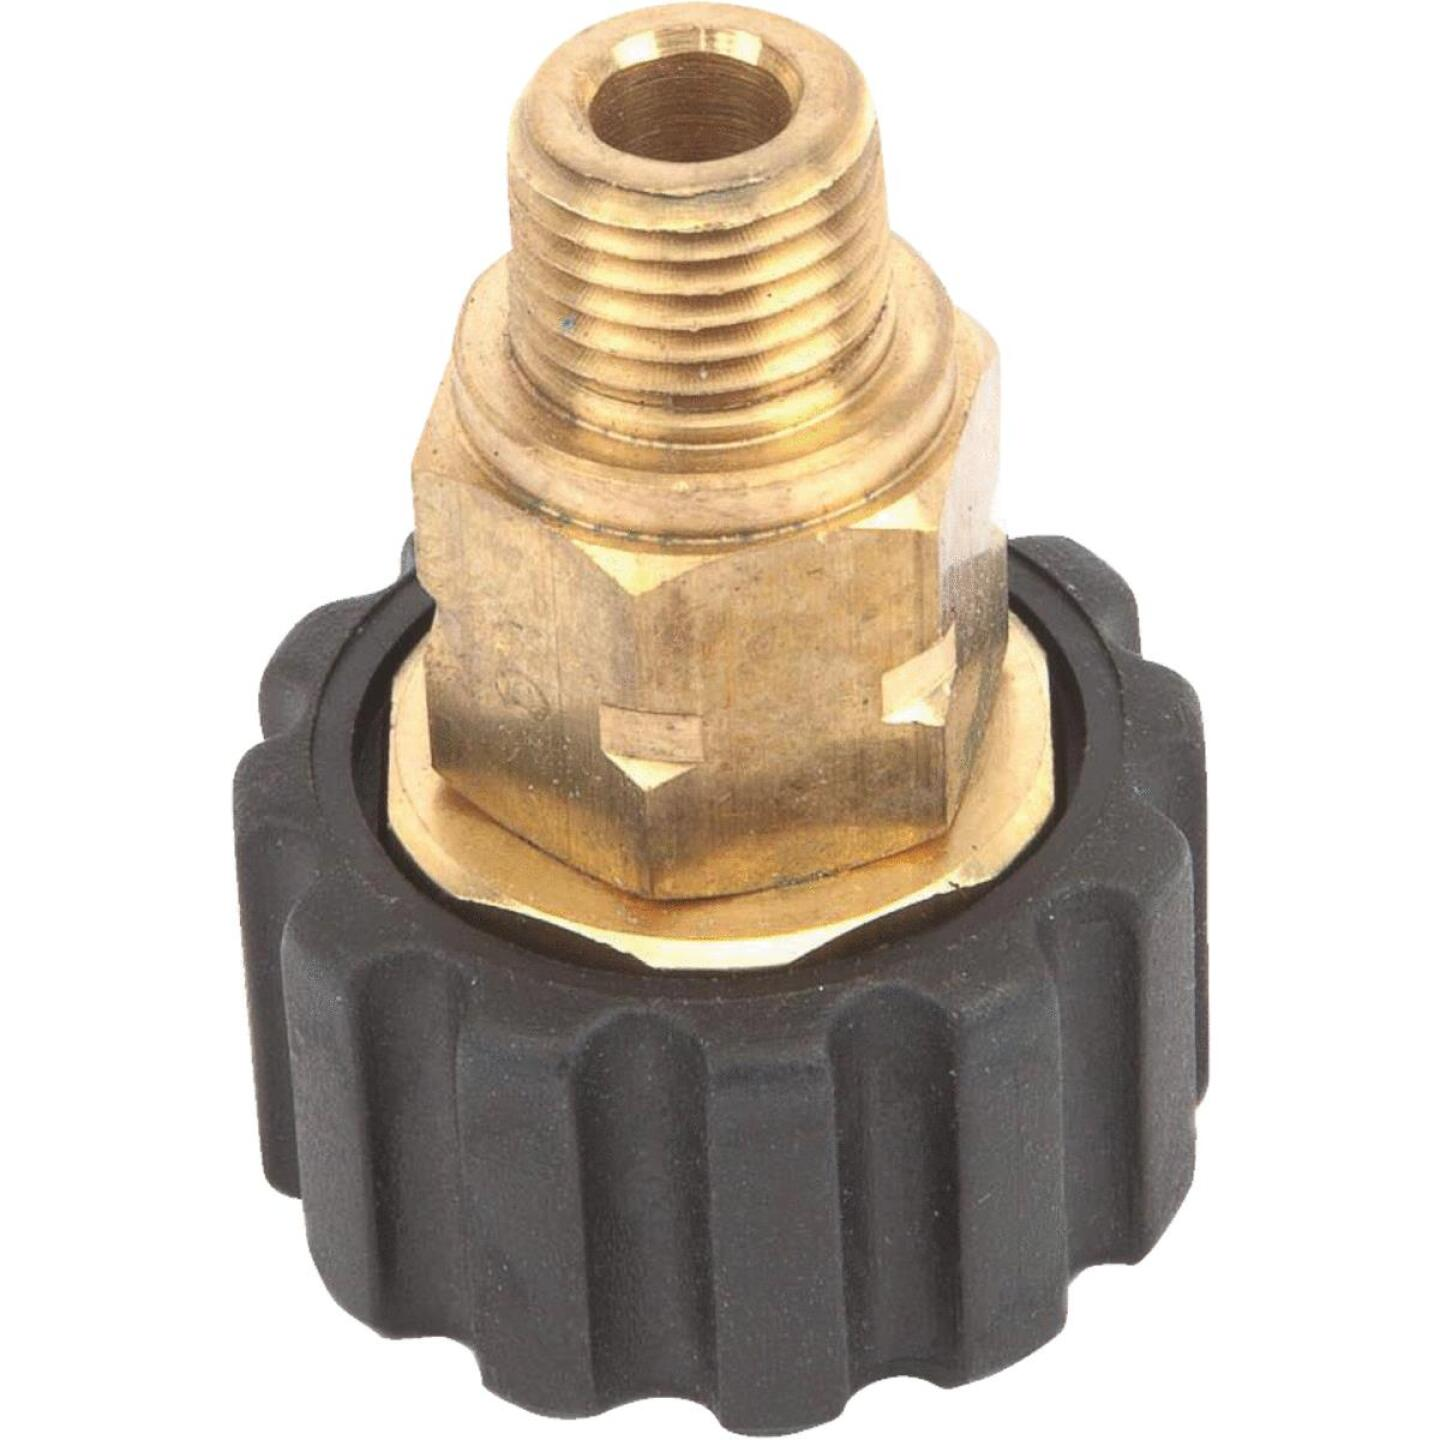 Forney M22F x 1/4 In. Male Screw Pressure Washer Coupling Image 3